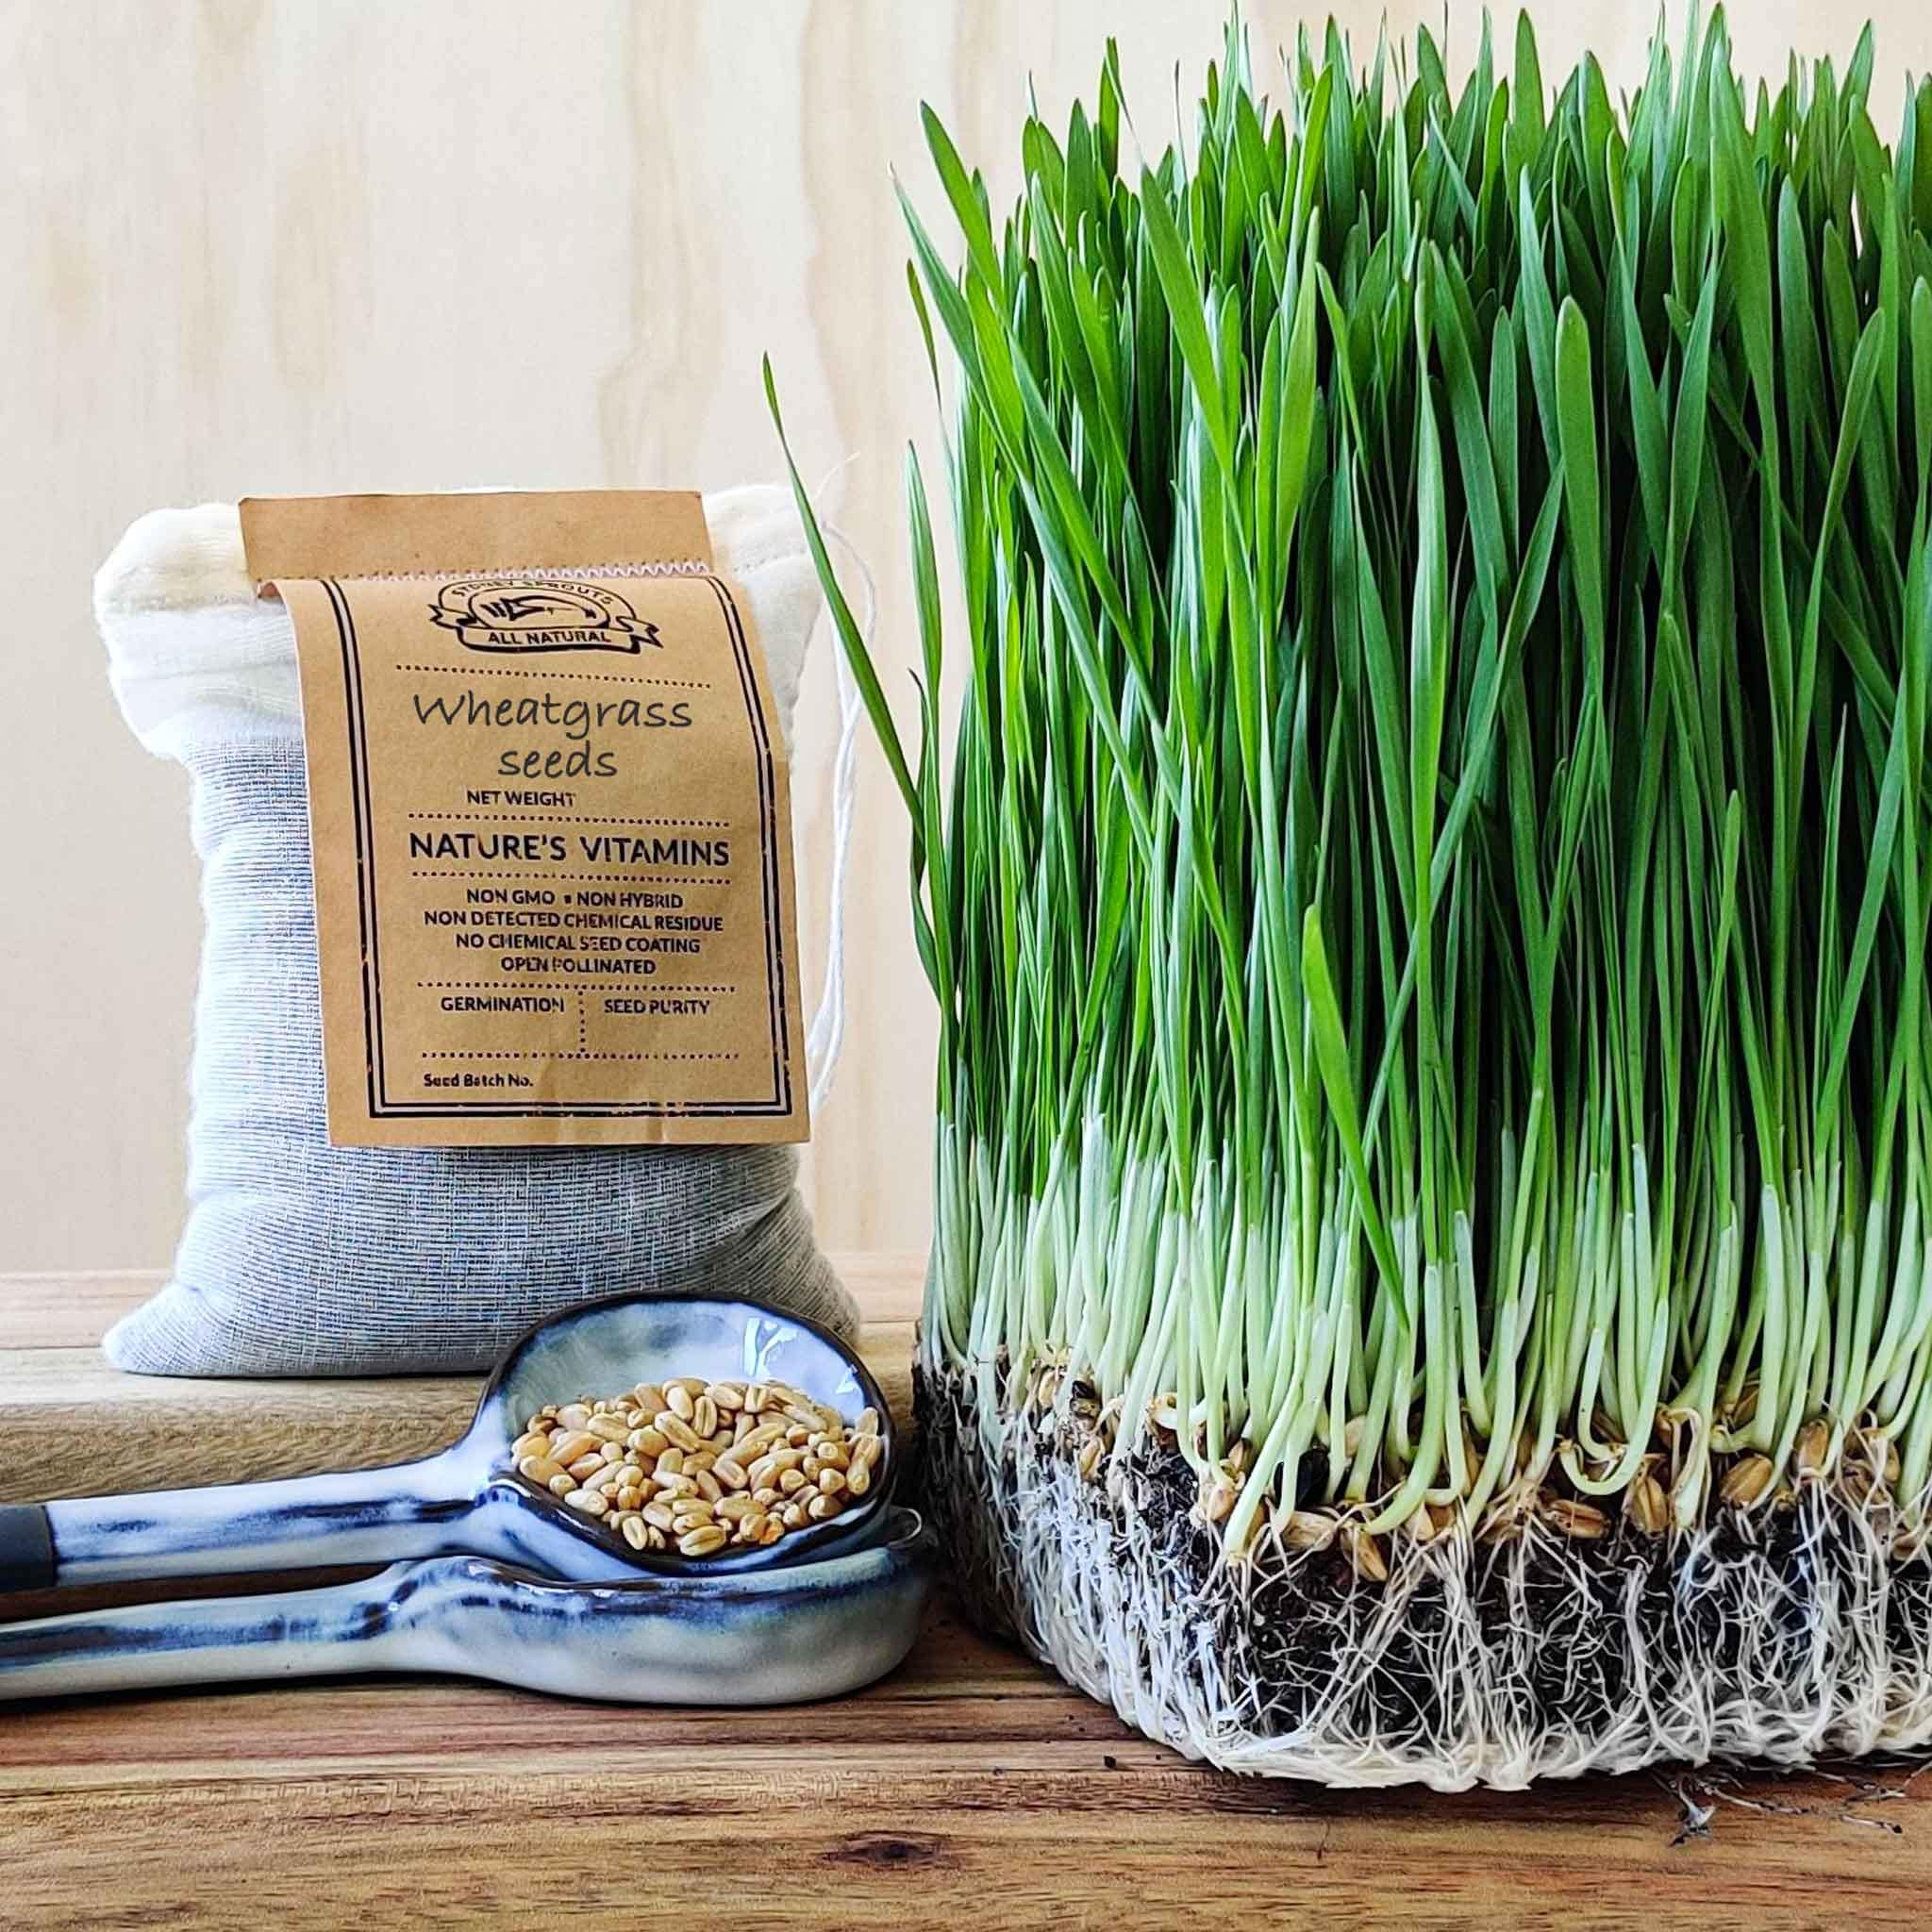 Wheatgrass kernels/sprouting seeds - Microgreens - Sydney Sprouts